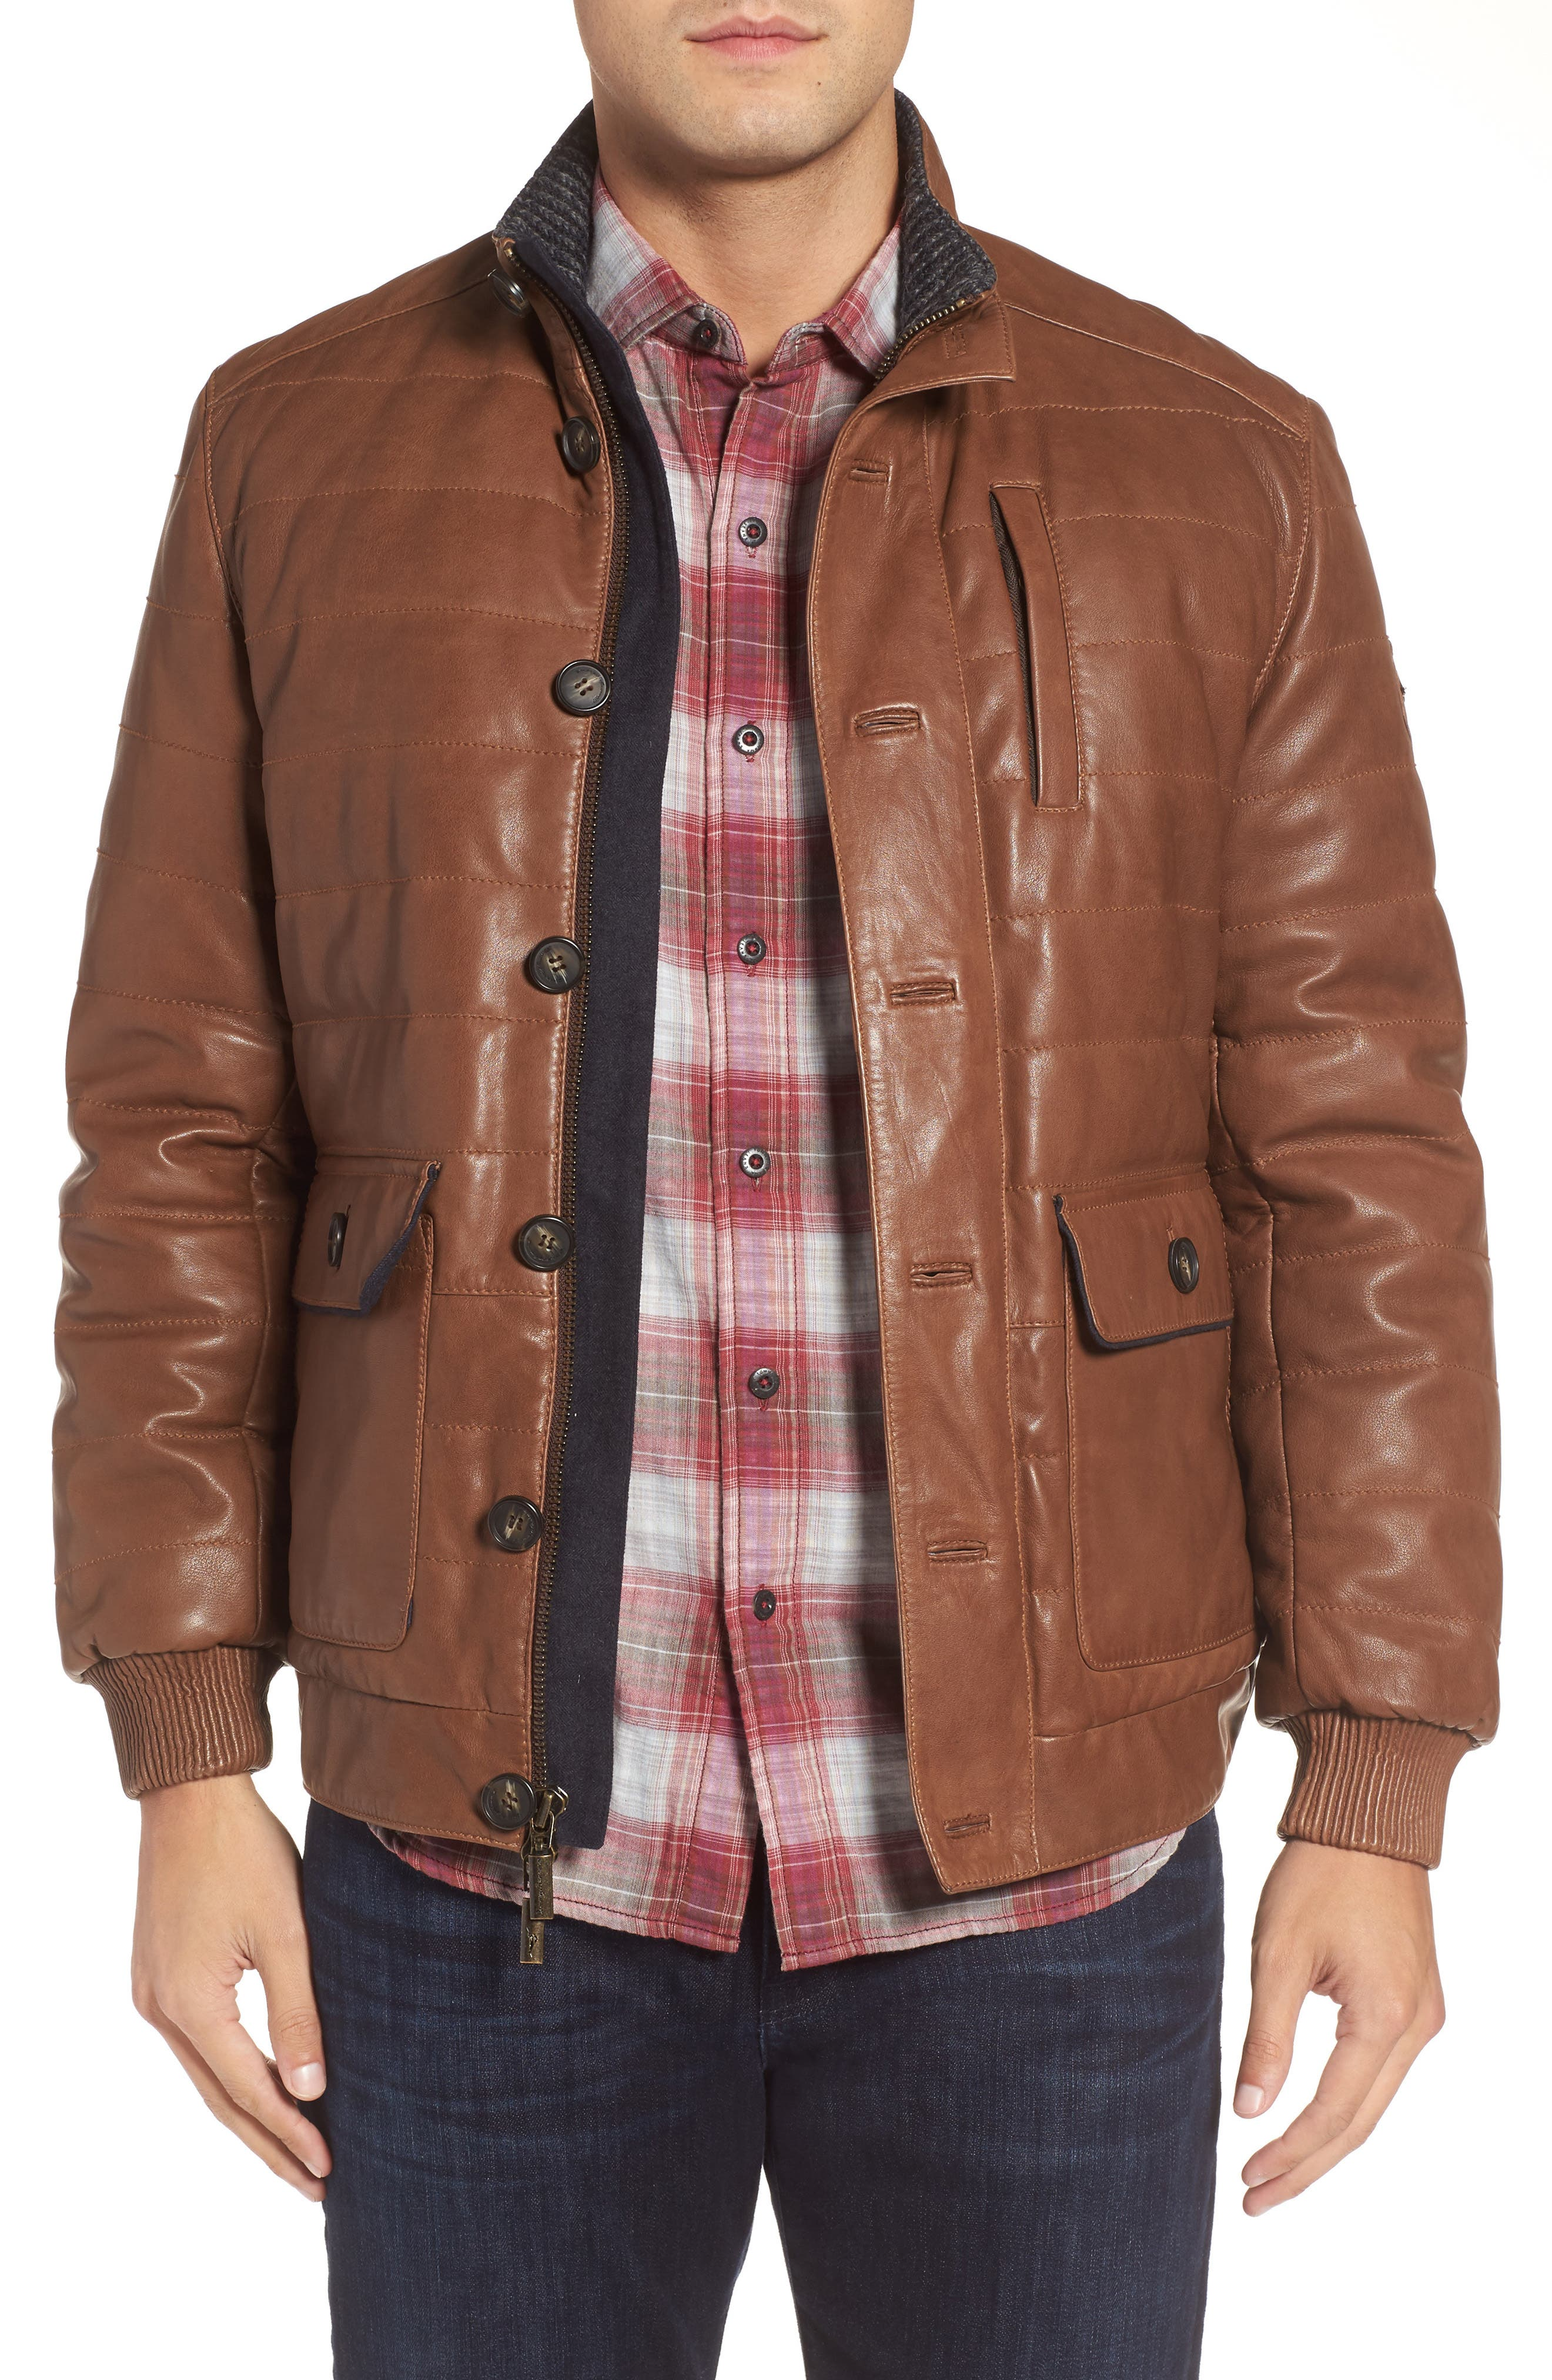 Snowside Leather Bomber Jacket,                         Main,                         color, Brown Enough